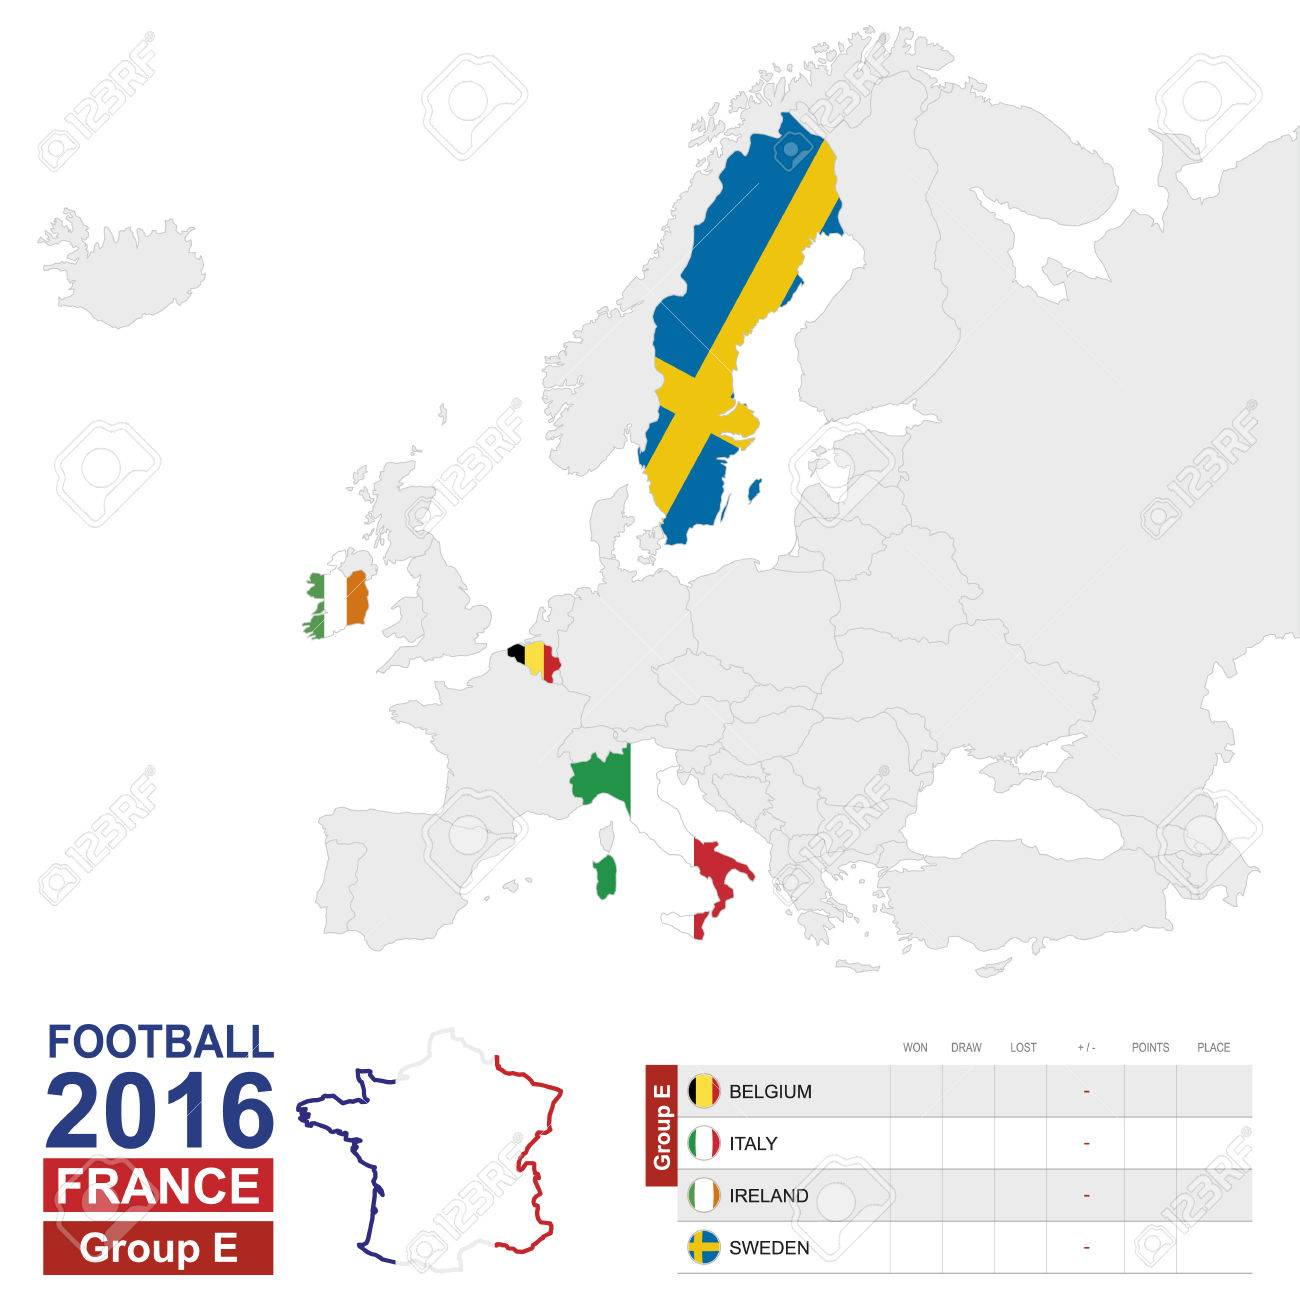 Map Of Europe With Italy Highlighted.Football 2016 Group E Table Group E Highlighted On Europe Map